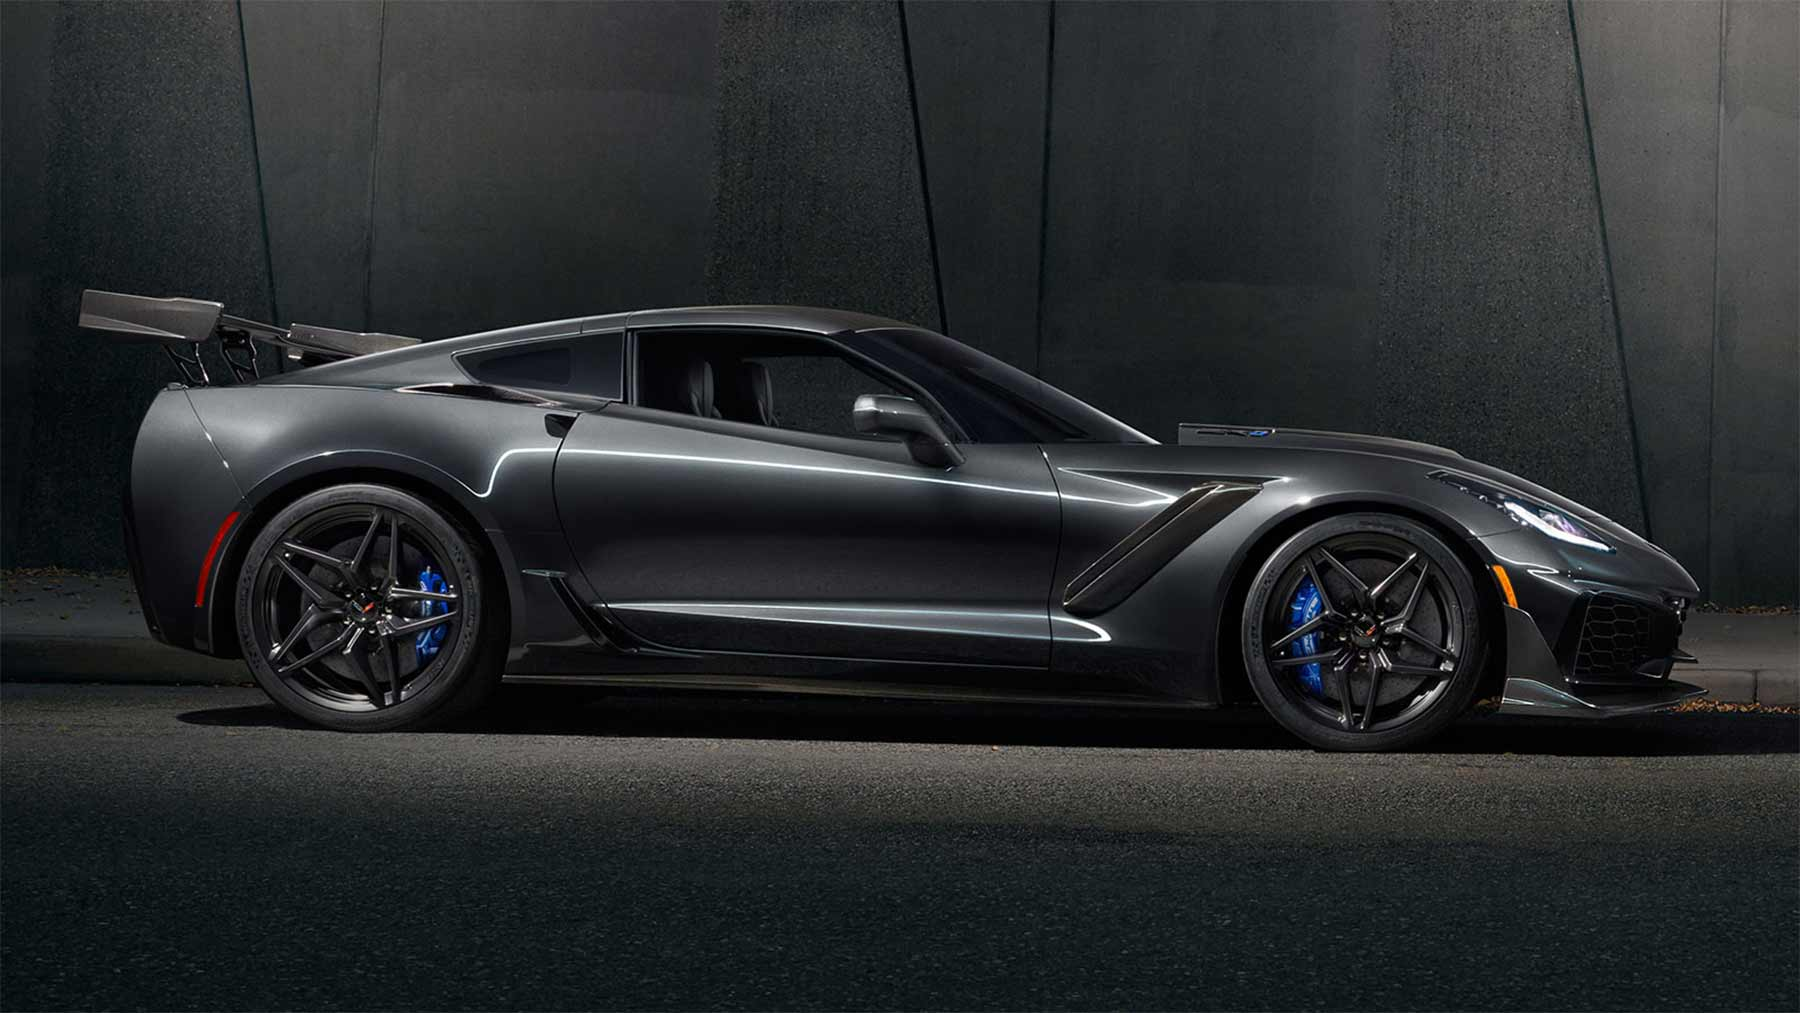 2019 Chevy Corvette ZR1 2019-Chevy-Corvette-ZR1_02